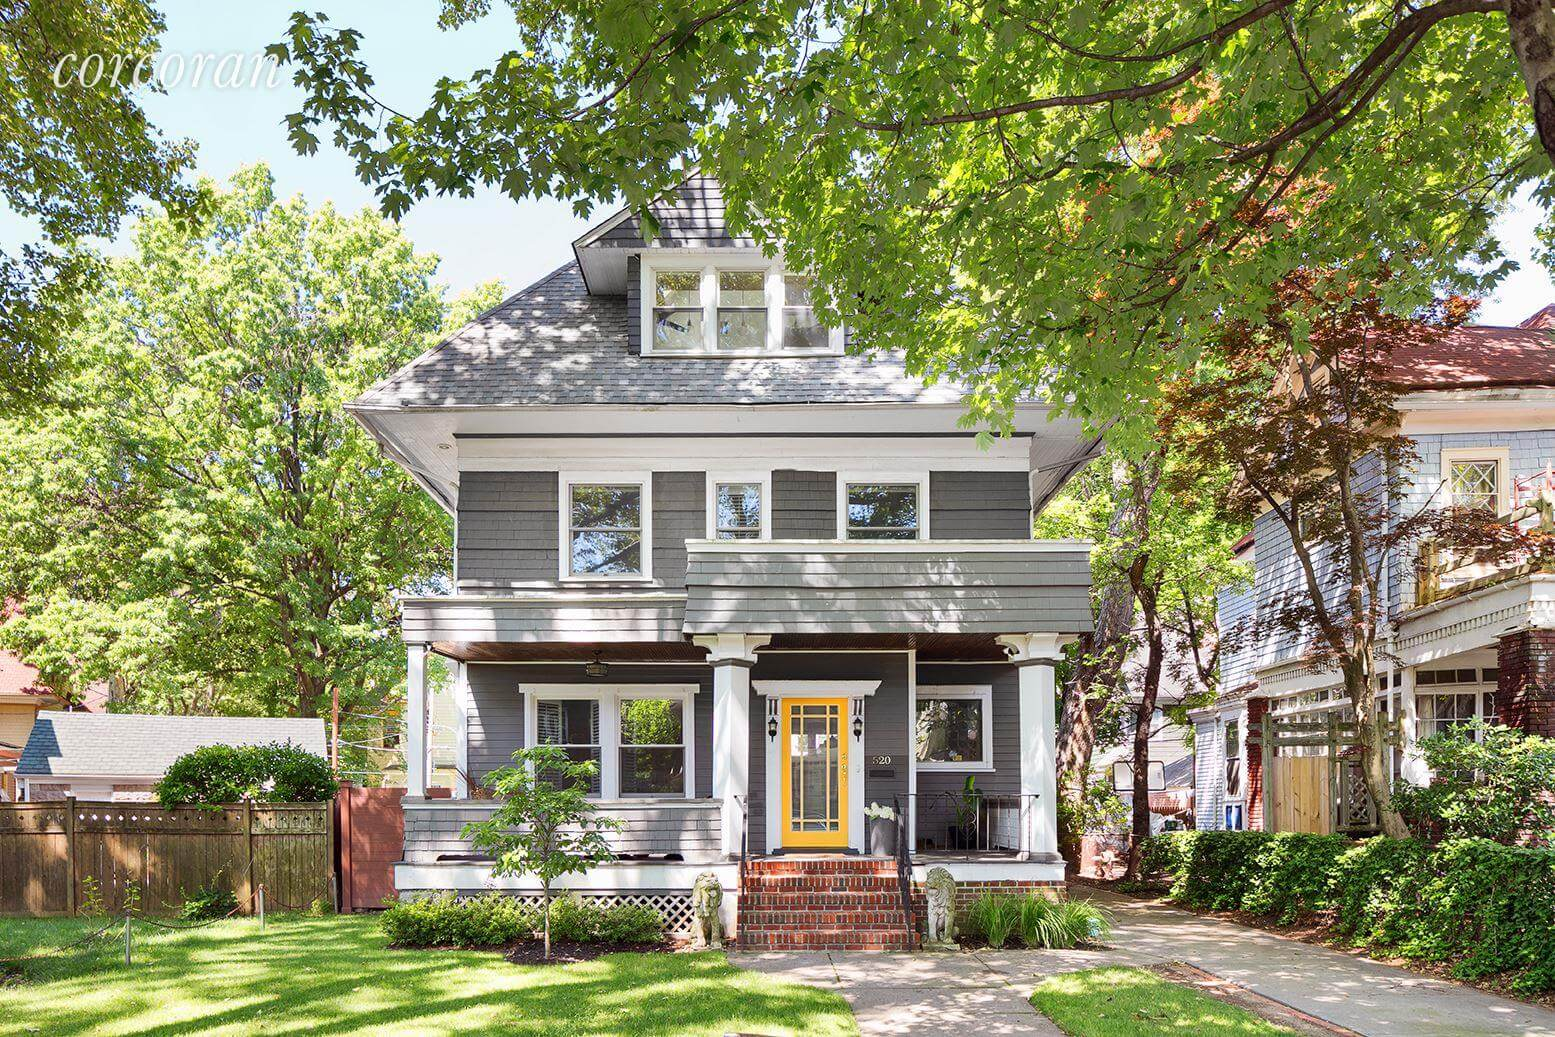 Brooklyn Homes For Sale In Ditmas Park At 520 Argyle Road